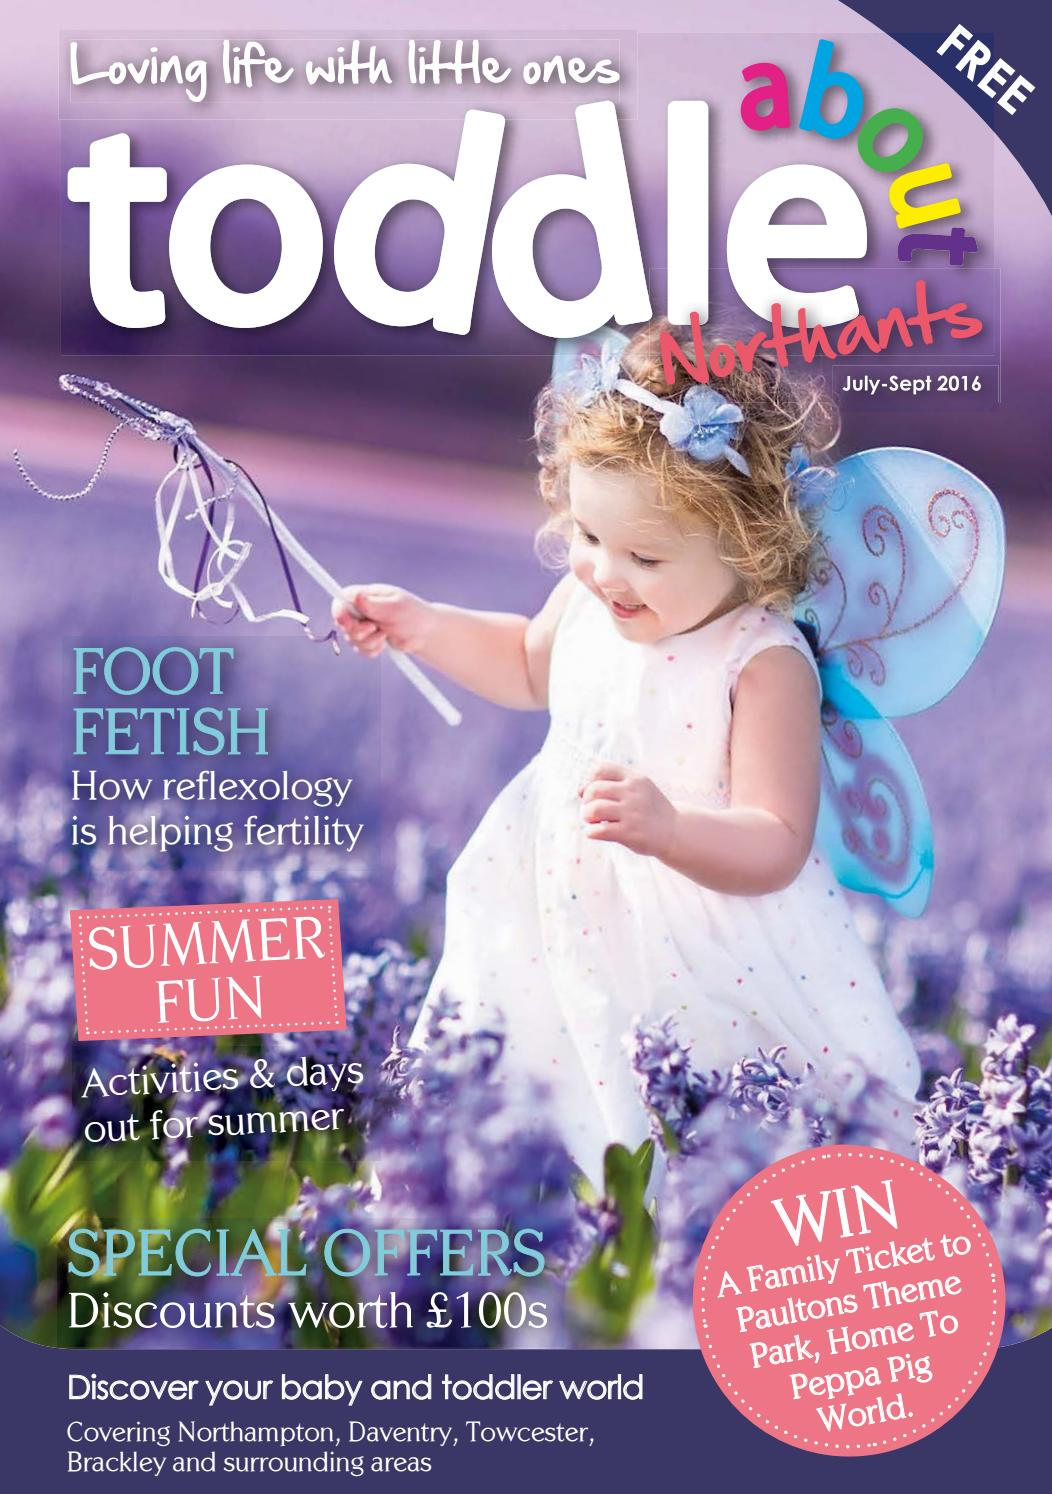 Lavender Blue Day Nursery Kettering North Northamptonshire Netmums Toddle About Northants July September 2016 By Issuu